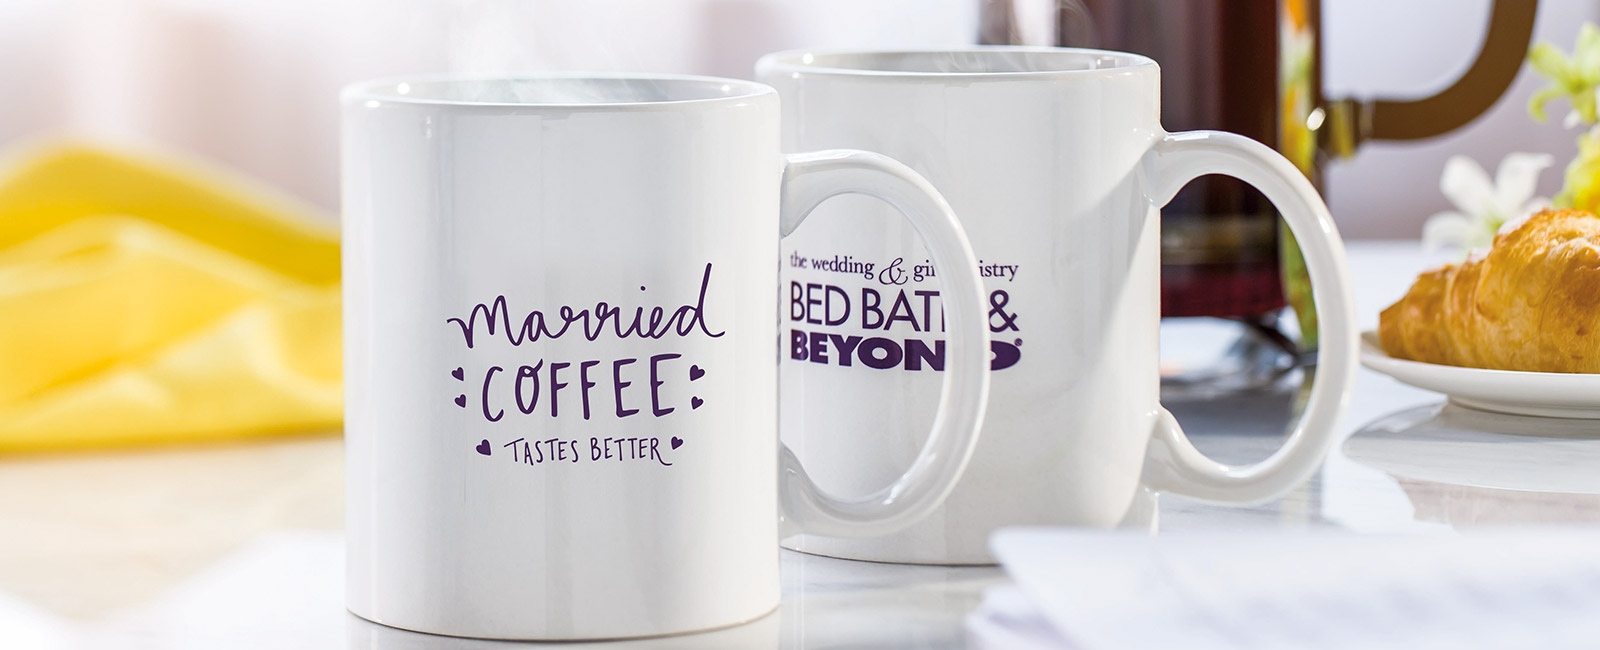 Bed Bath and Beyond mugs on a countertop